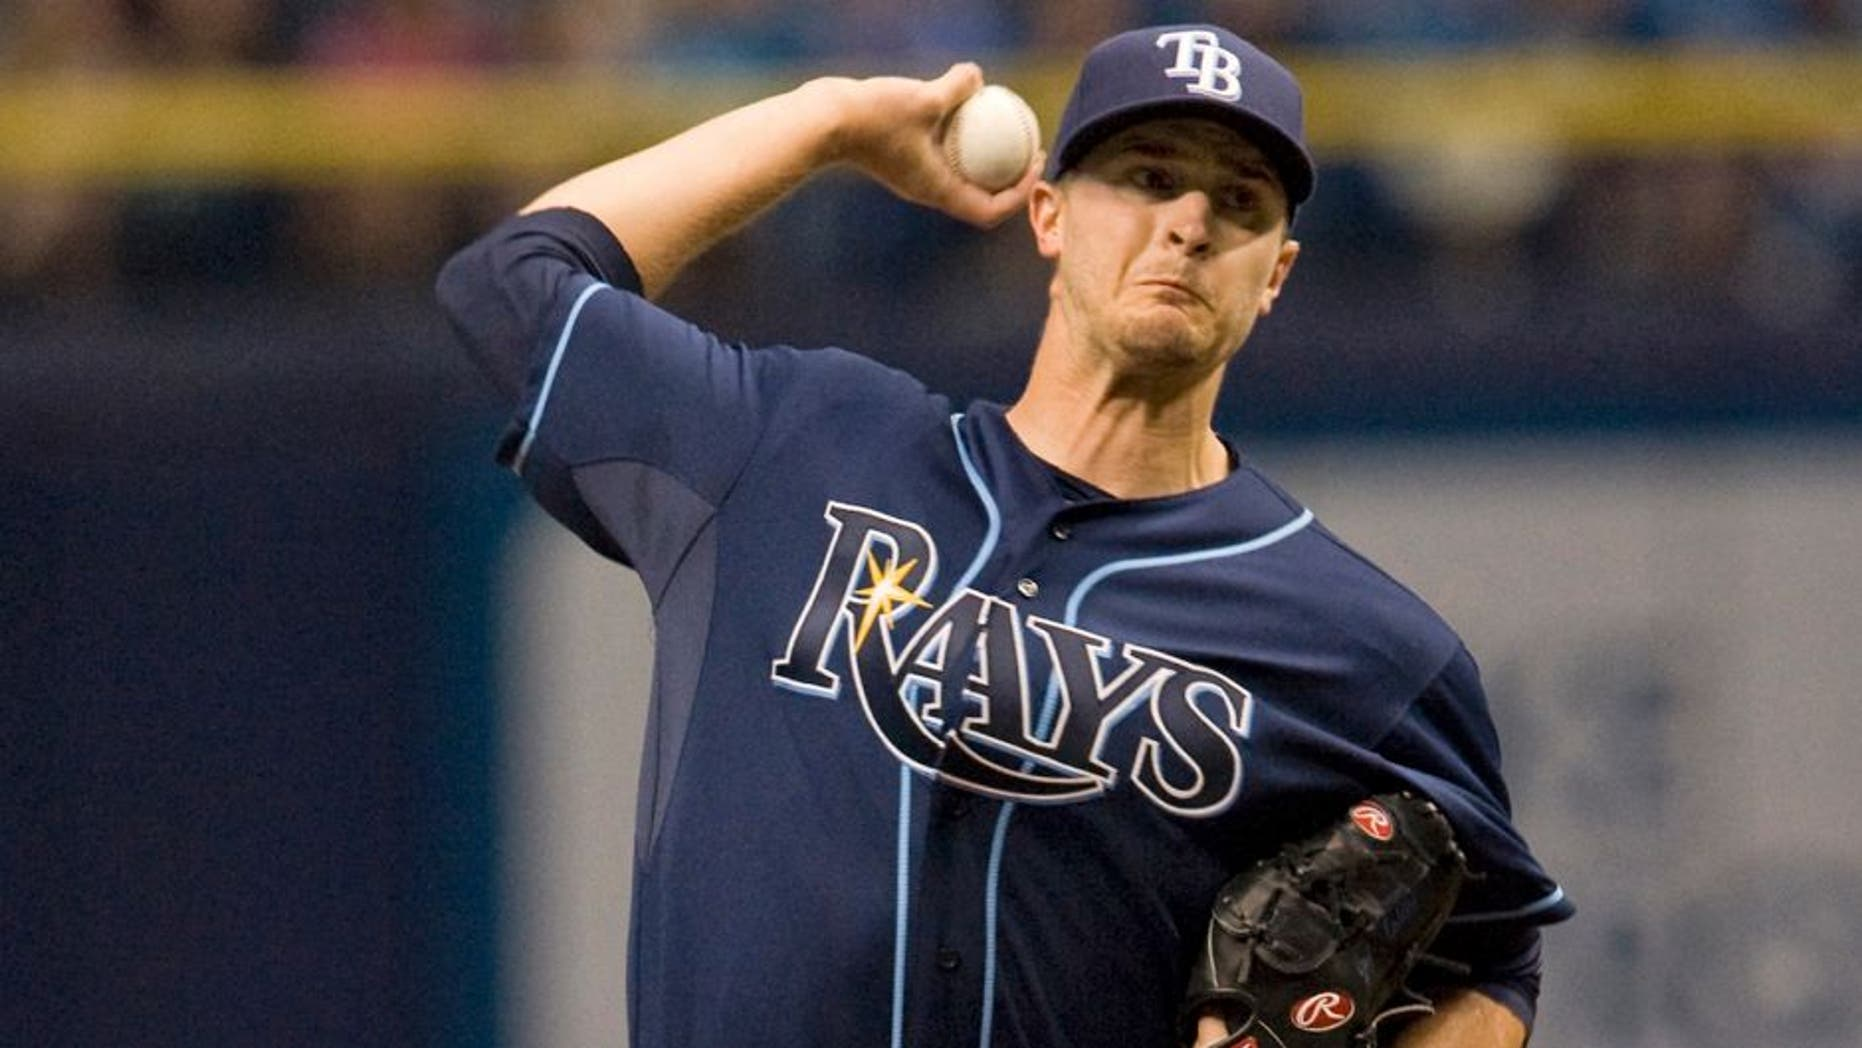 Tampa Bay Rays starter Jake Odorizzi pitches against the Kansas City Royals during the first inning of a baseball game Saturday, Aug. 29, 2015, in St. Petersburg, Fla. (AP Photo/Steve Nesius)